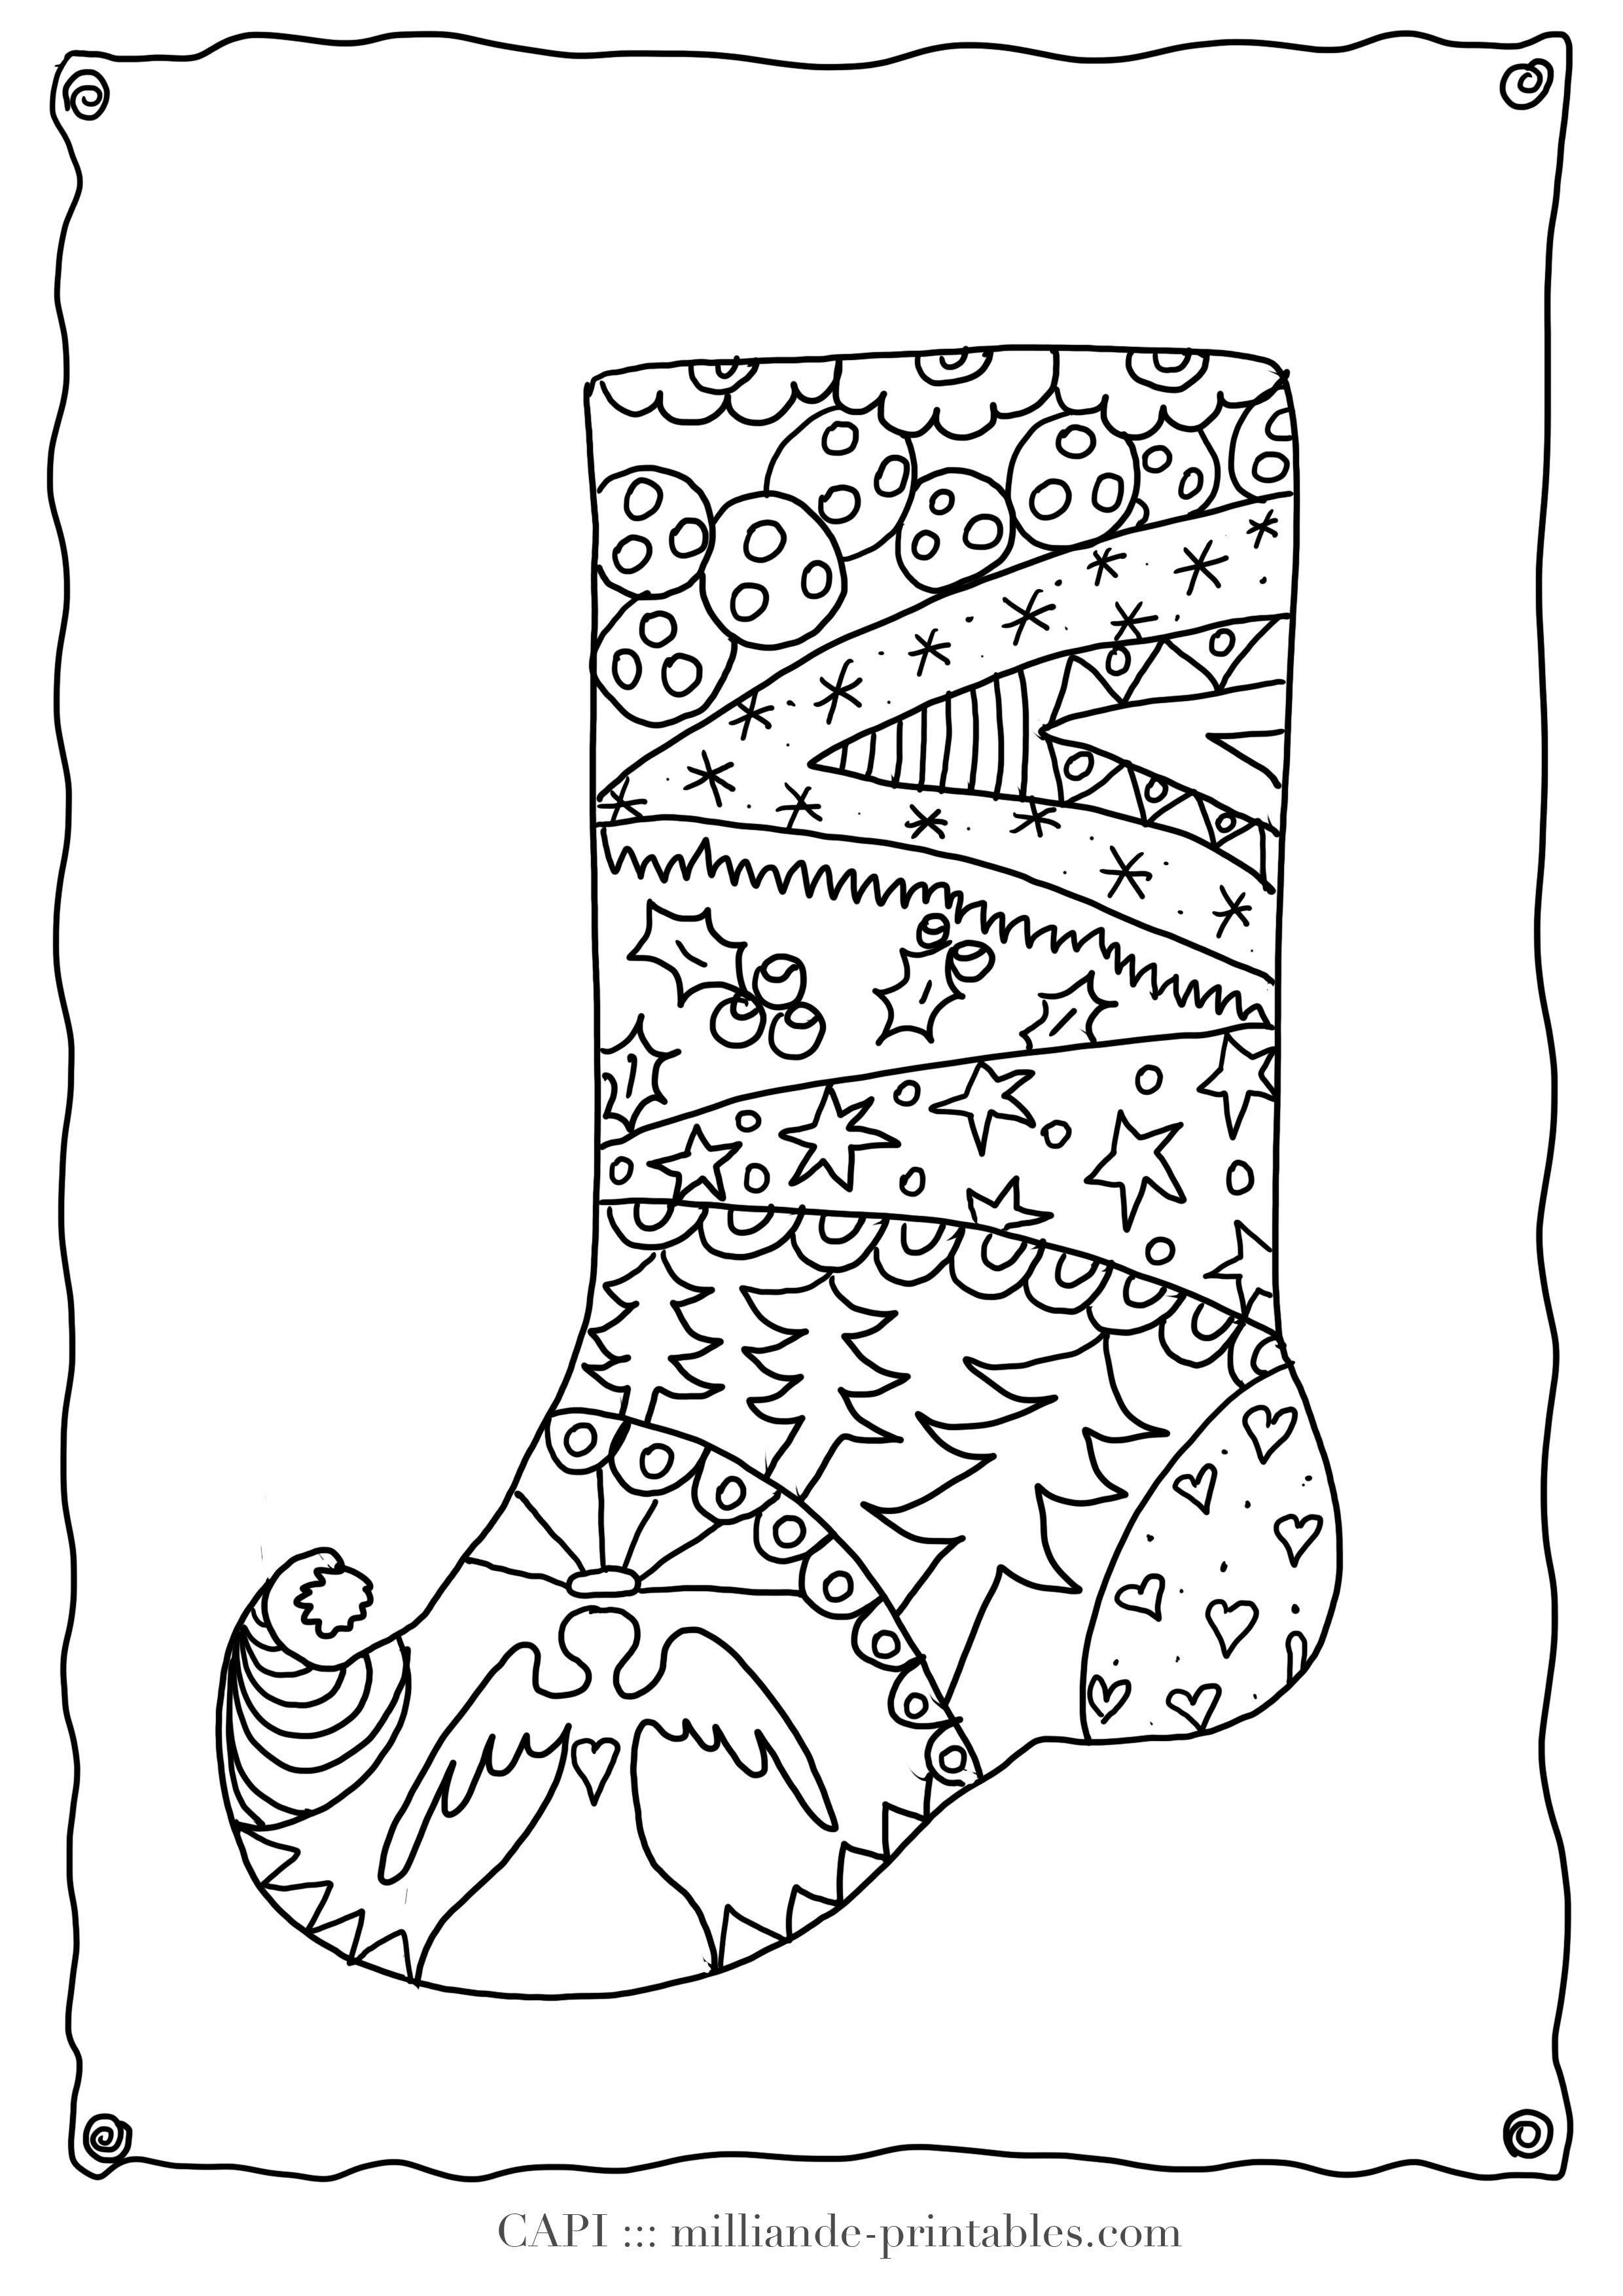 Free Printable Christmas Coloring Pages For Adults Only With Detailed Bing Images Design Pinterest